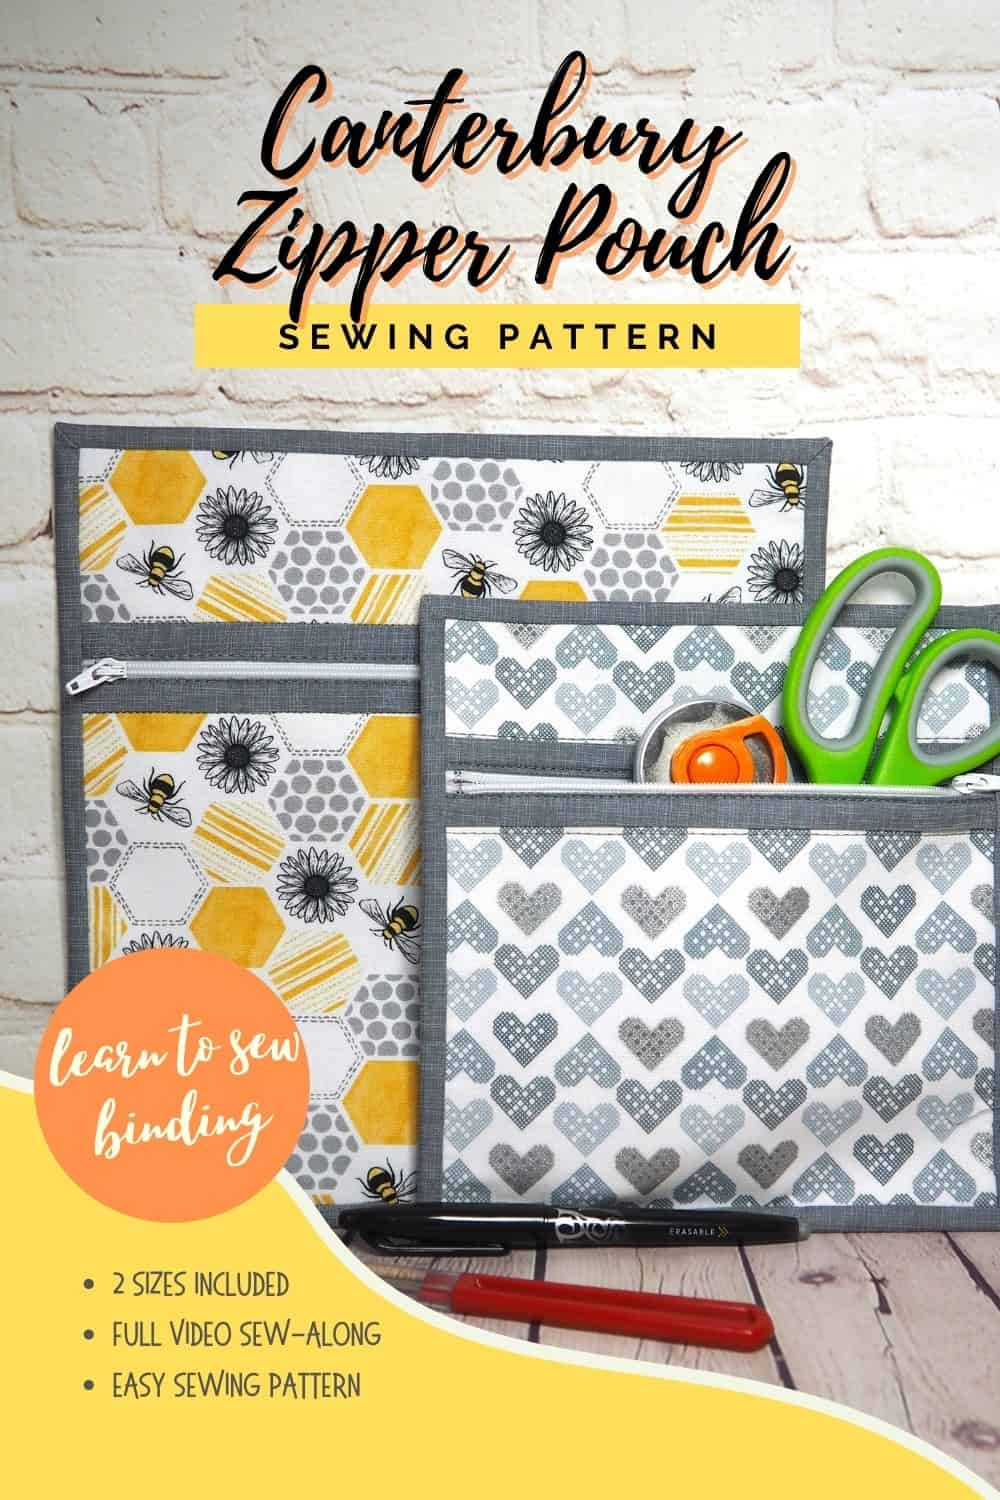 Two zipper pouches side by side, one showing its use as storage to sew for sewing and craft supplies. The Canterbury Zipper Pouch sewing pattern with video tutorial.